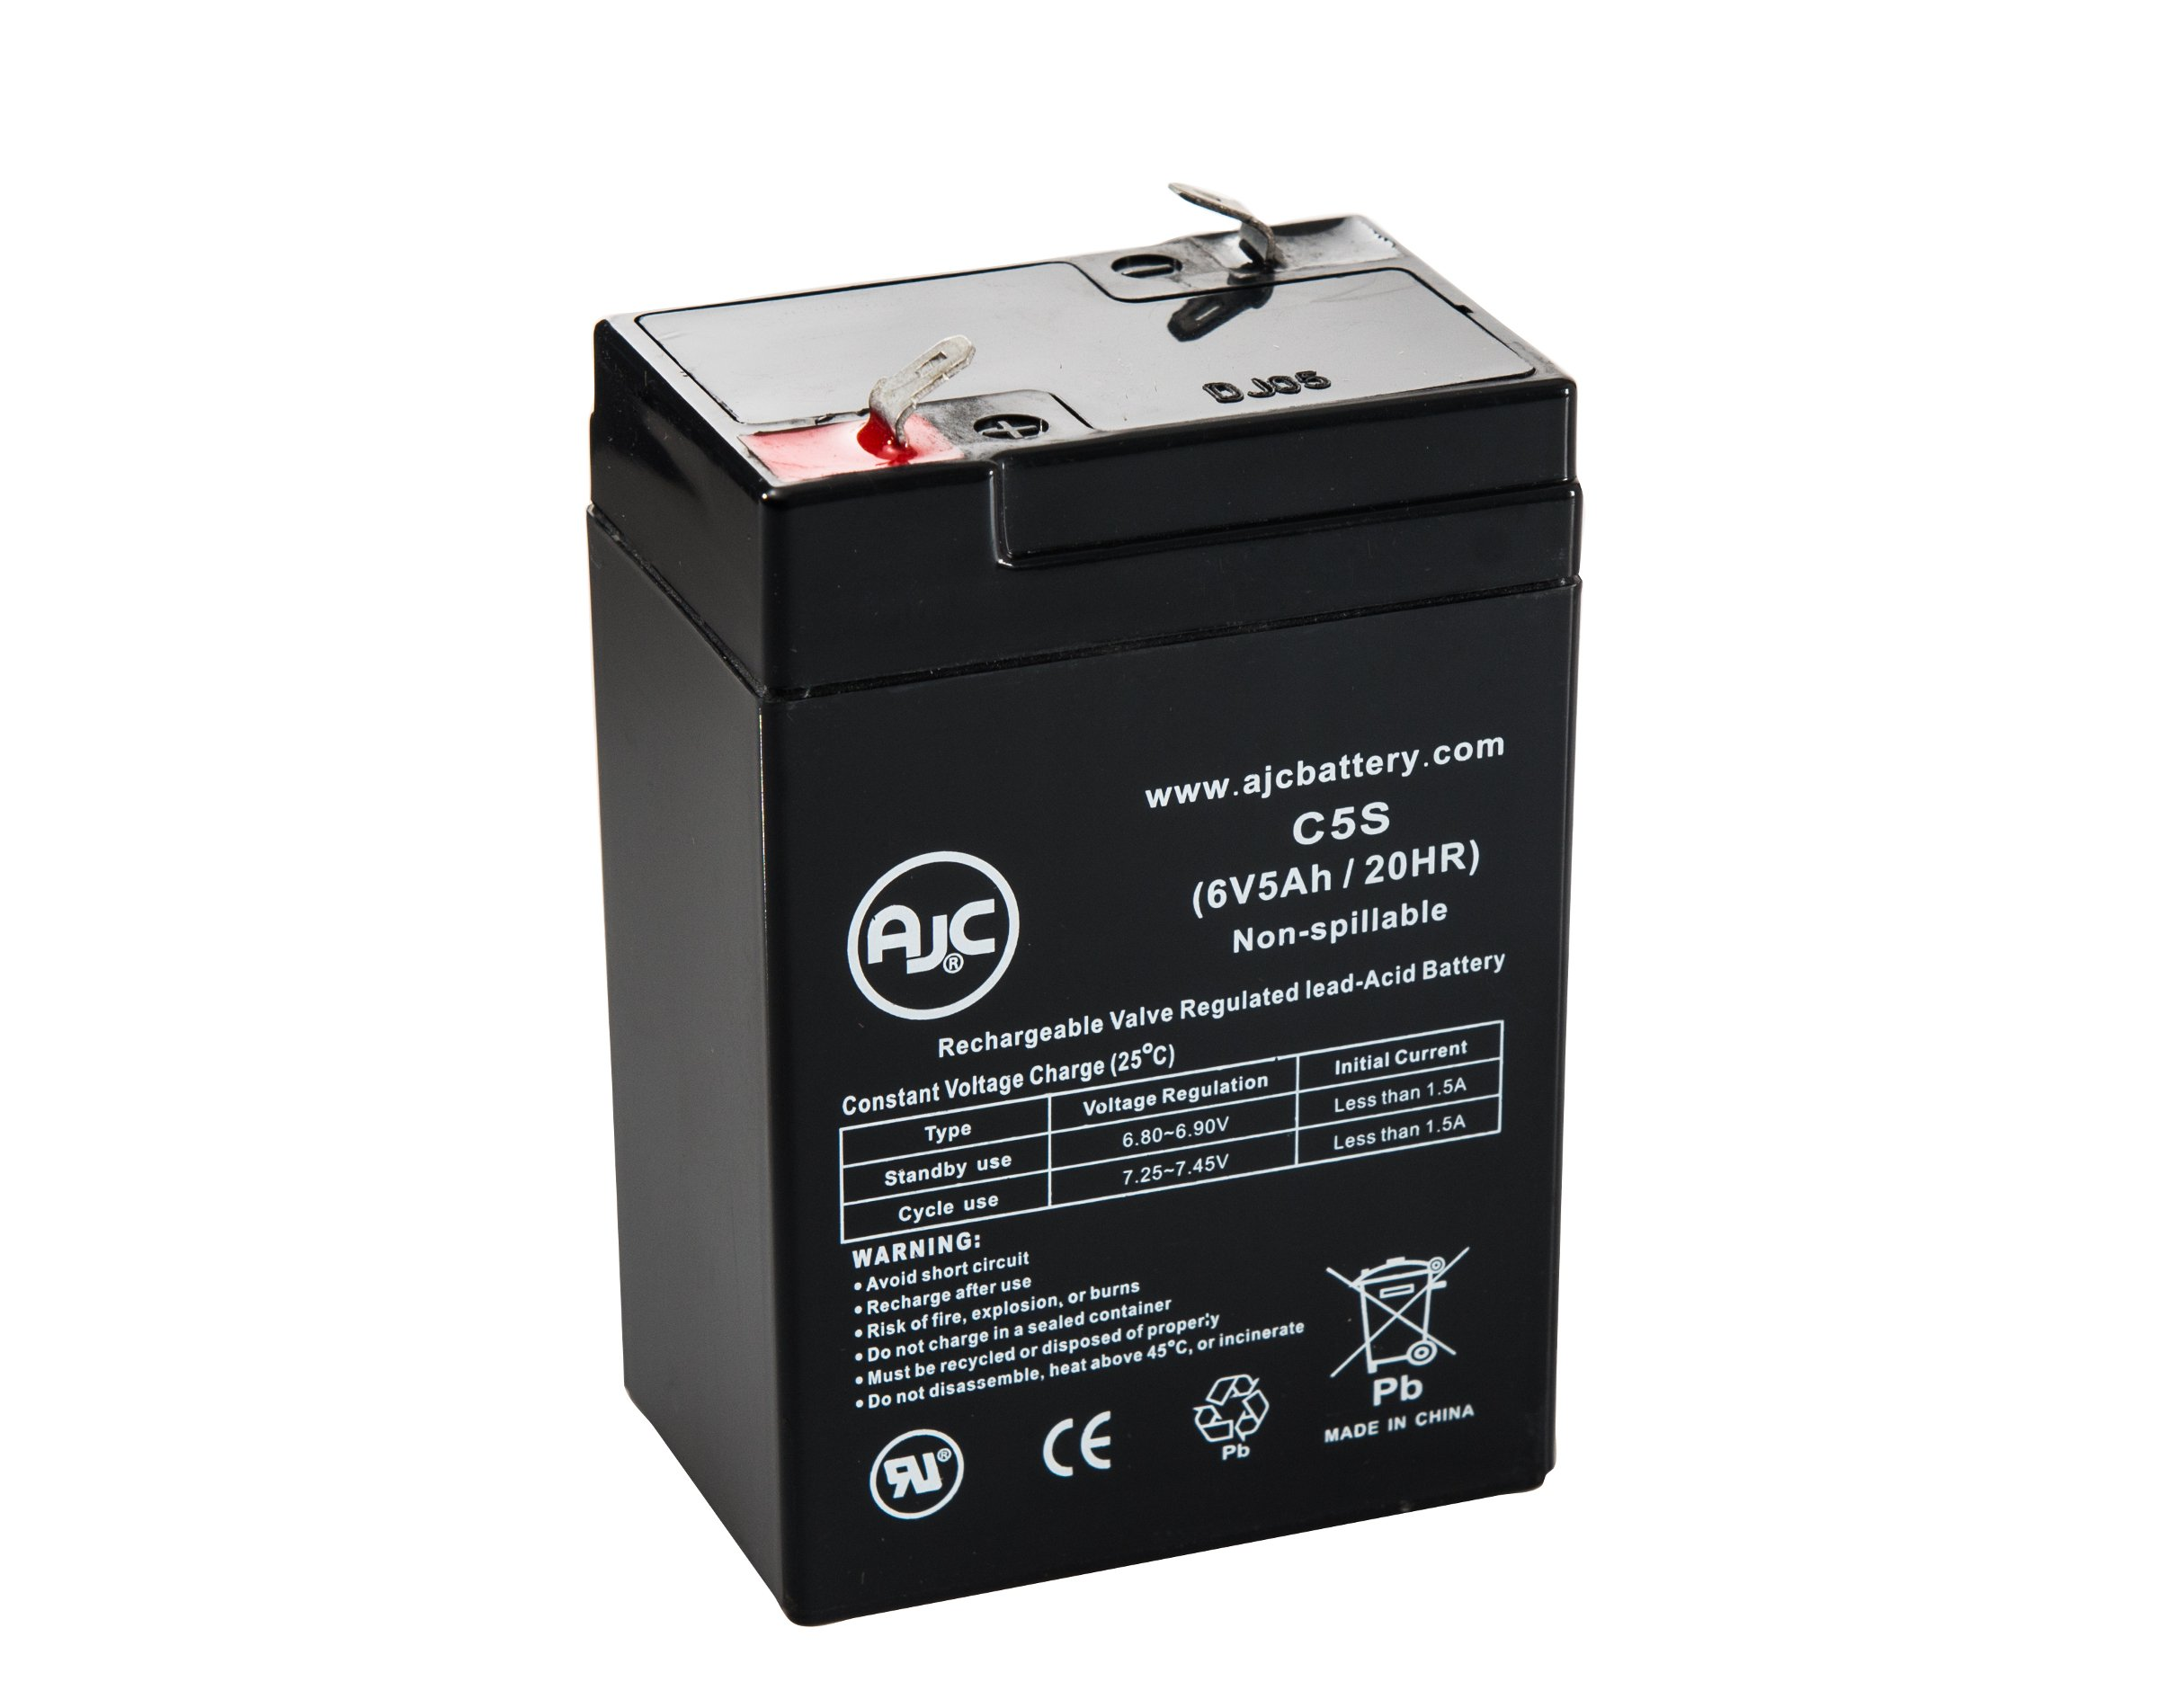 12V 12Ah Compaq T700 This is an AJC Brand Replacement 12V 12Ah UPS Battery